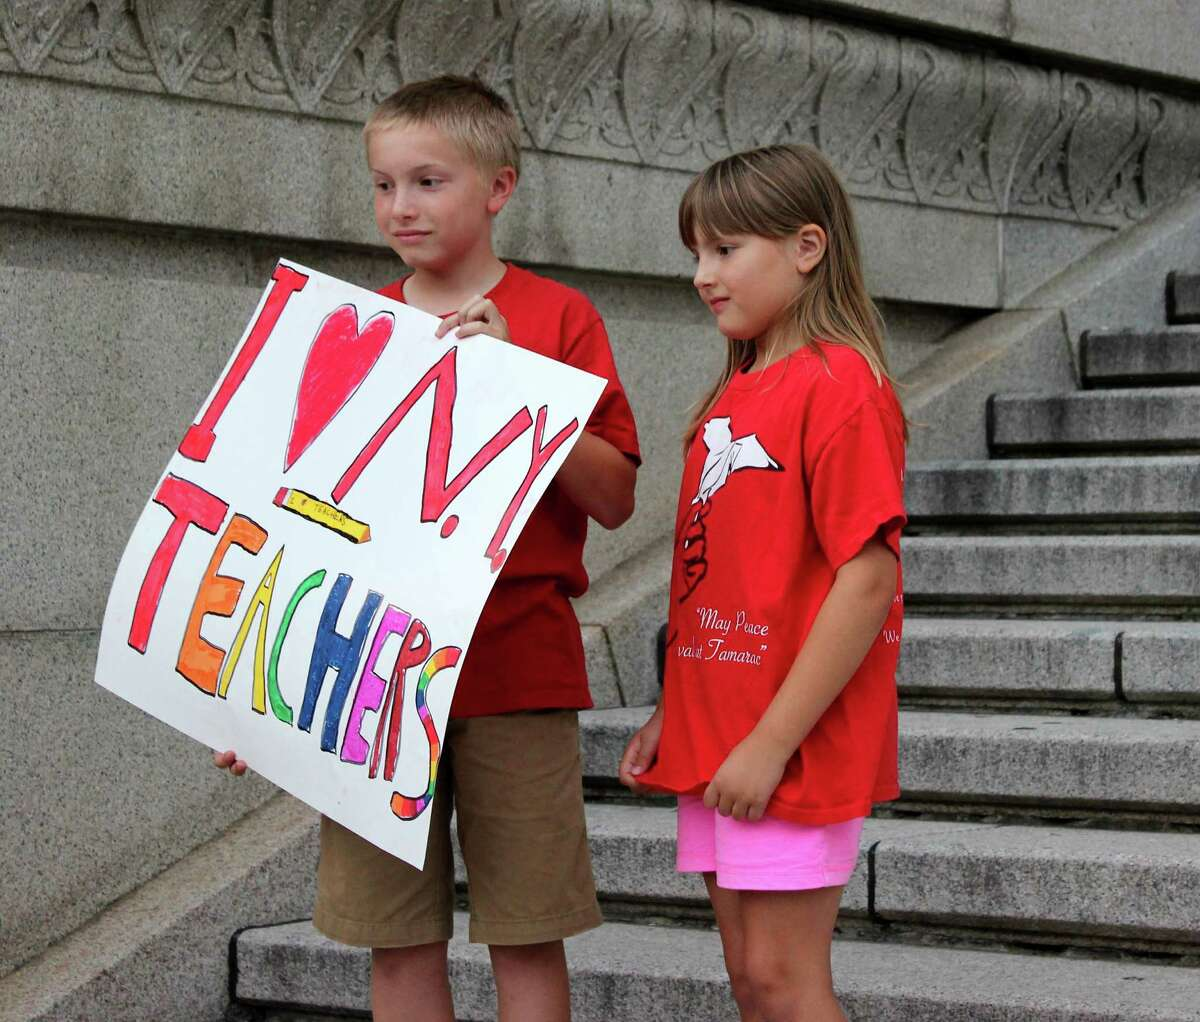 Eleven-year-old Michael Jacques, left, and 8-year-old Katelyn Jacques, right, of Waterford participate in the protests against the common core test contracts outside of the NYS Education Department on Monday evening, August 11, 2014, in Albany N.Y. (Selby Smith/Special to the Times Union)